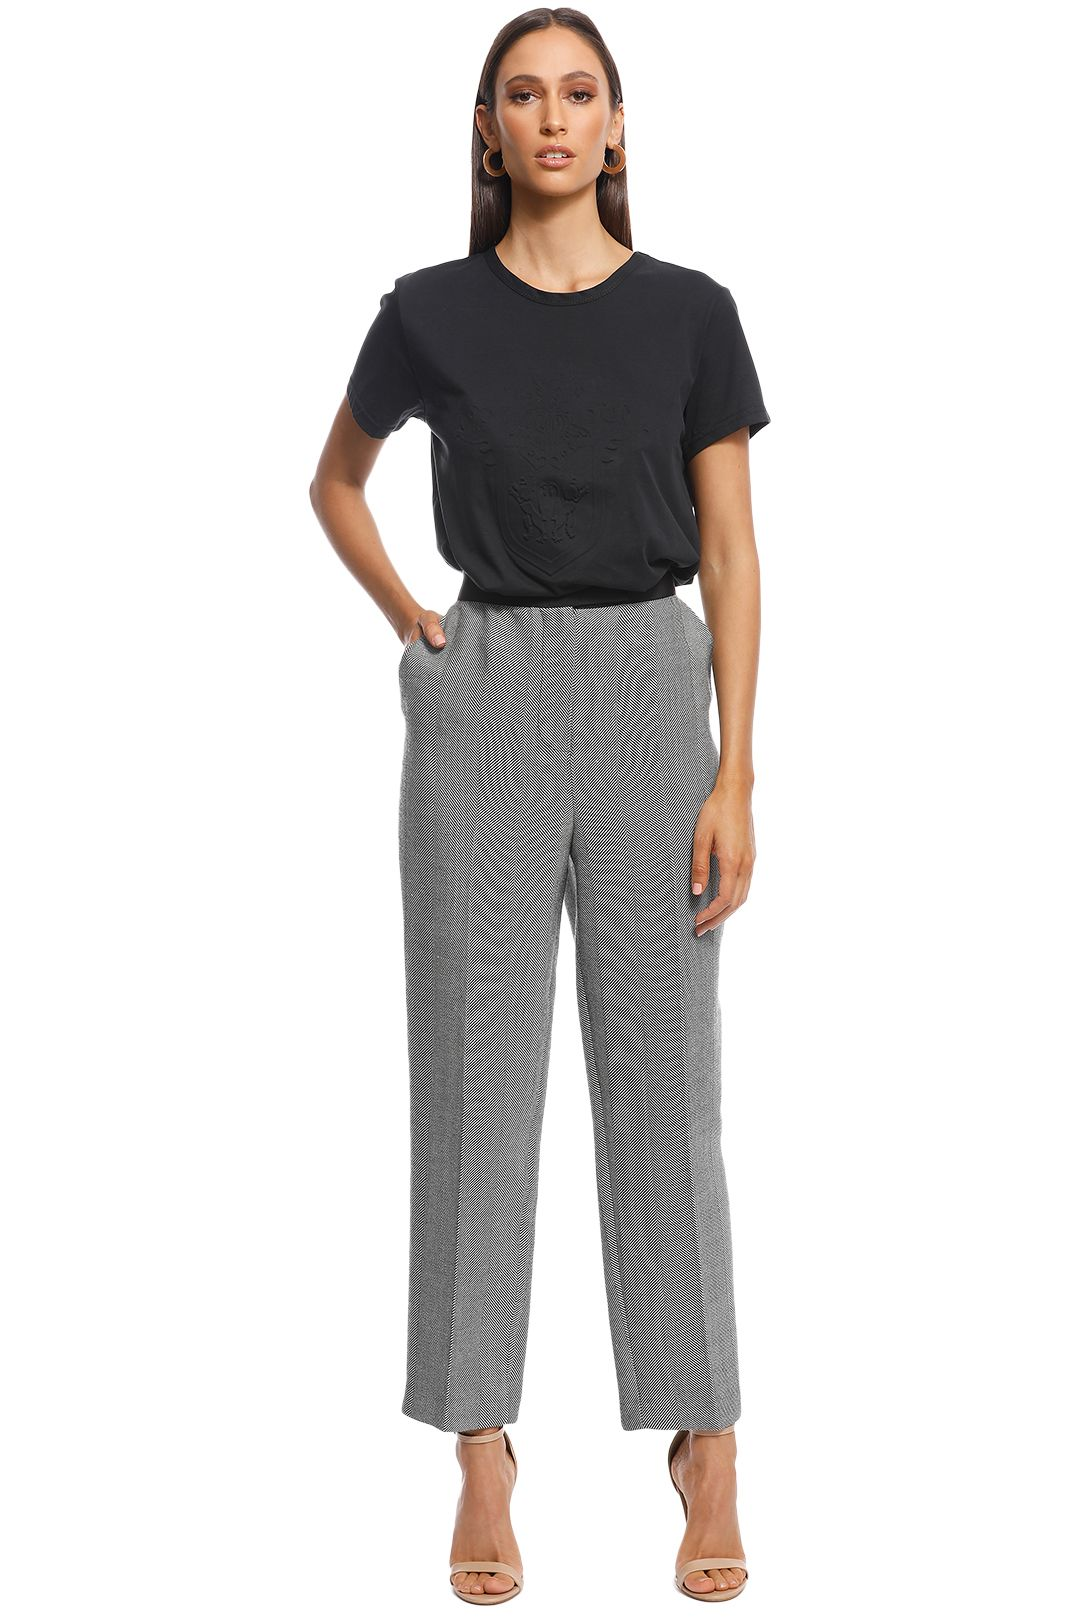 Camilla and Marc - Hayworth Trouser - Grey - Front